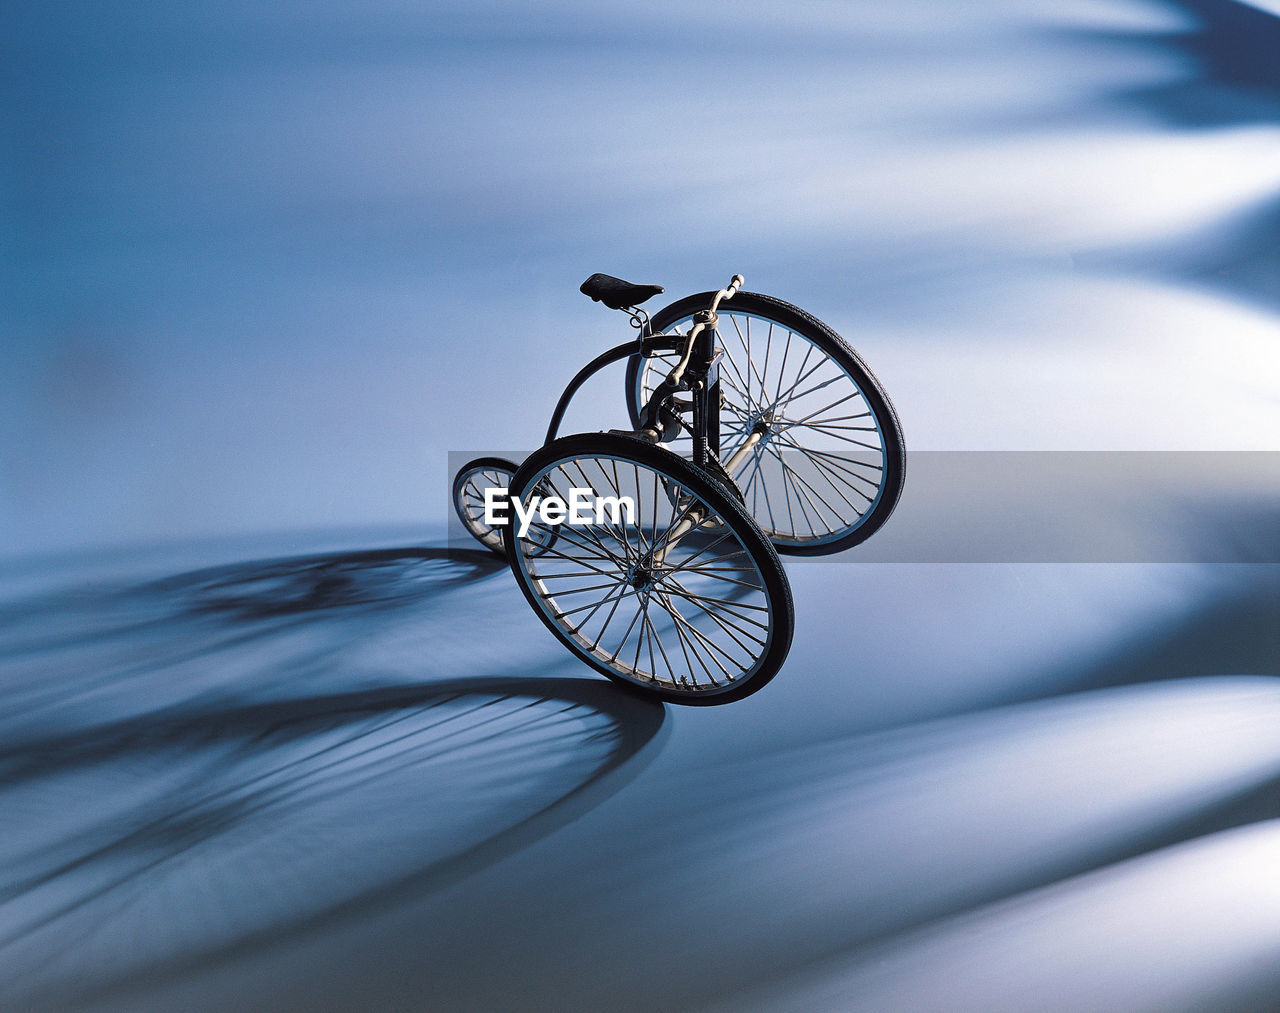 High Angle View Of Bicycle On Flooring